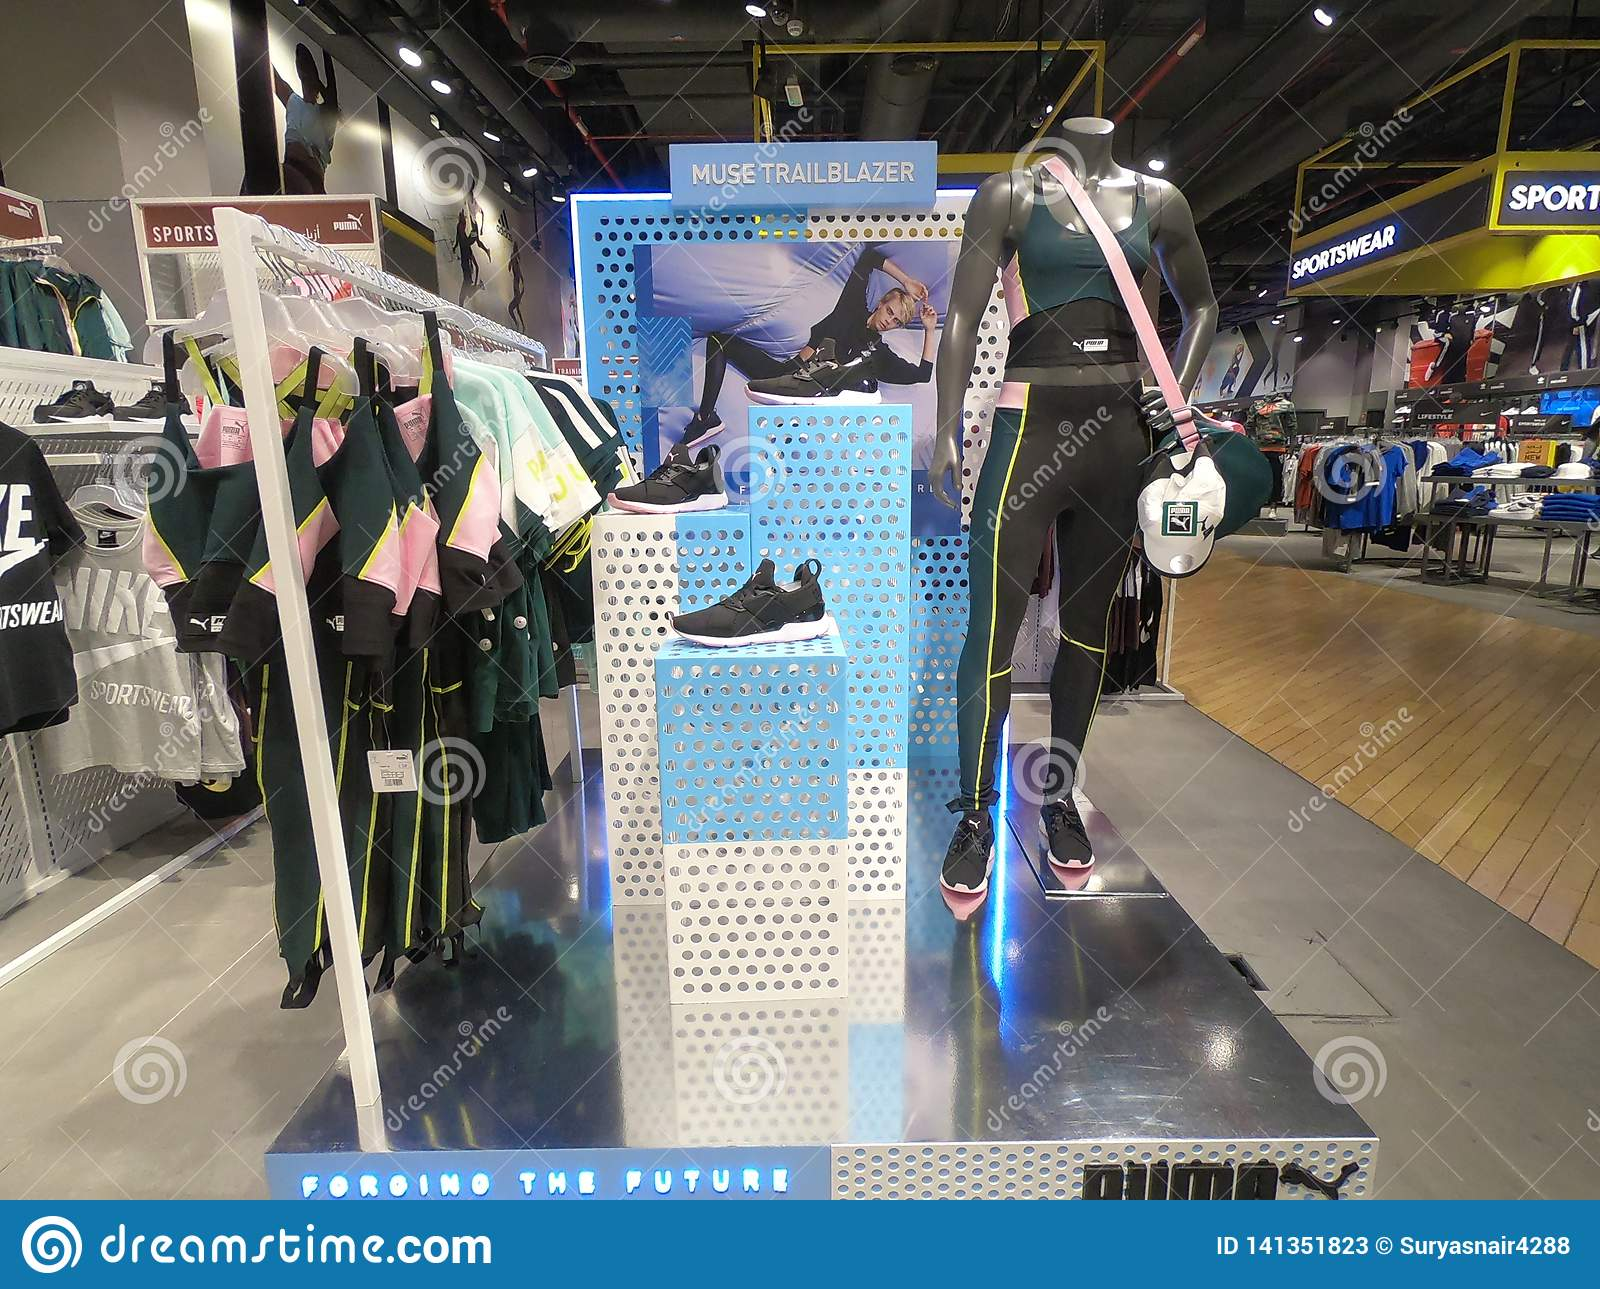 soporte terciopelo Amanecer  Dubai, UAE - March 2019 Puma Merchandise Displayed For Sale On Mannequin. Puma  Sports Wear, Shoes, Tank Tops And Bag For Sale Editorial Stock Photo -  Image of fitness, apparel: 141351823